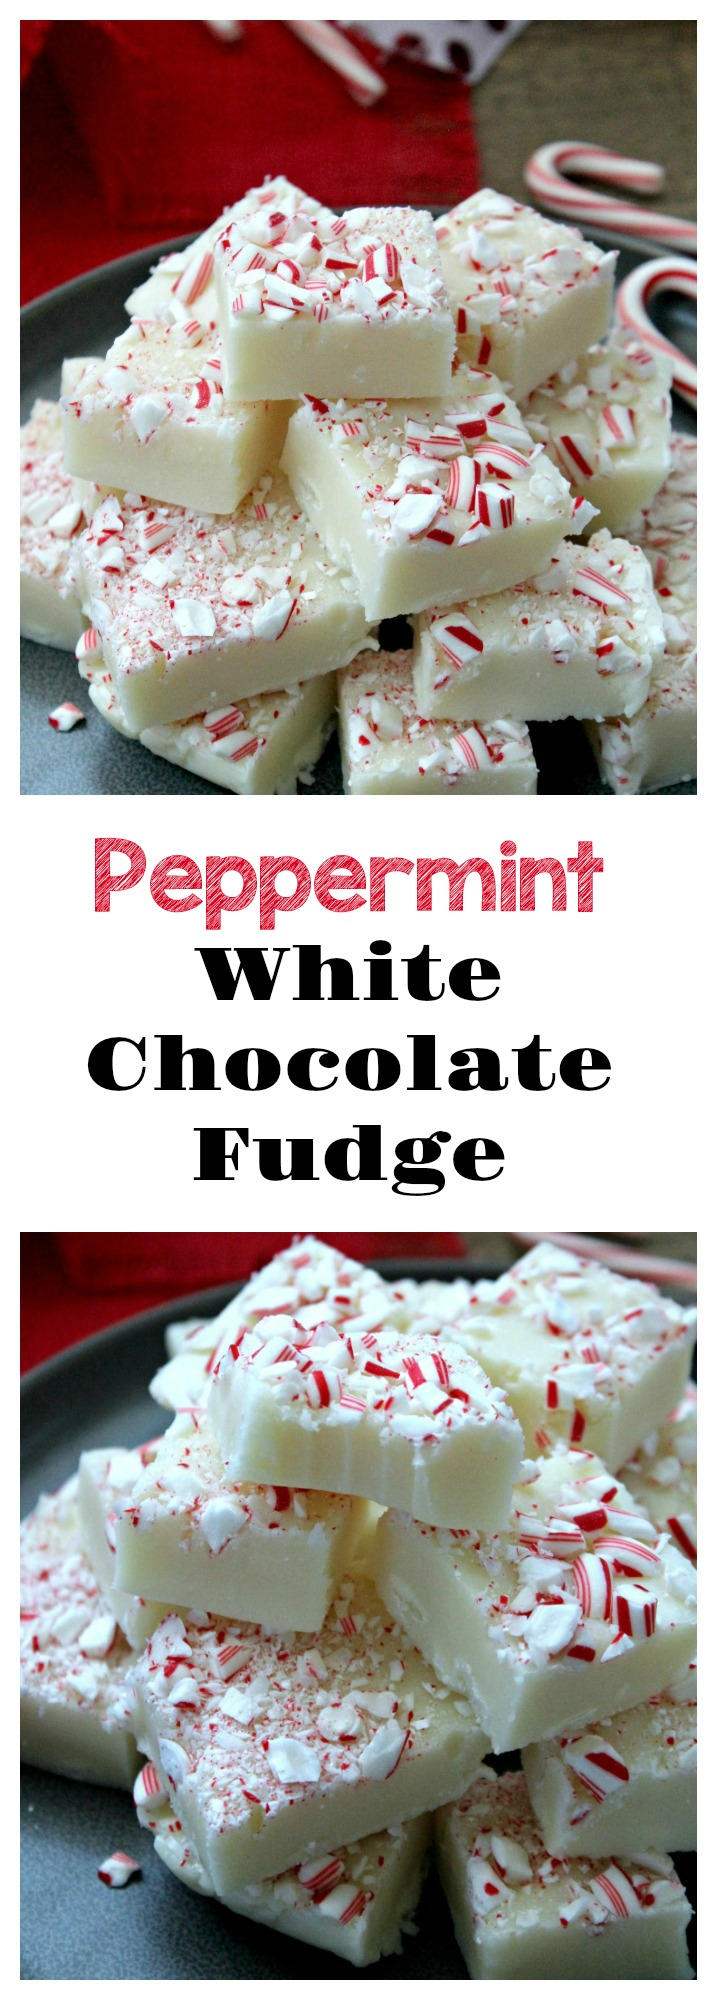 Peppermint-White Chocolate Fudge